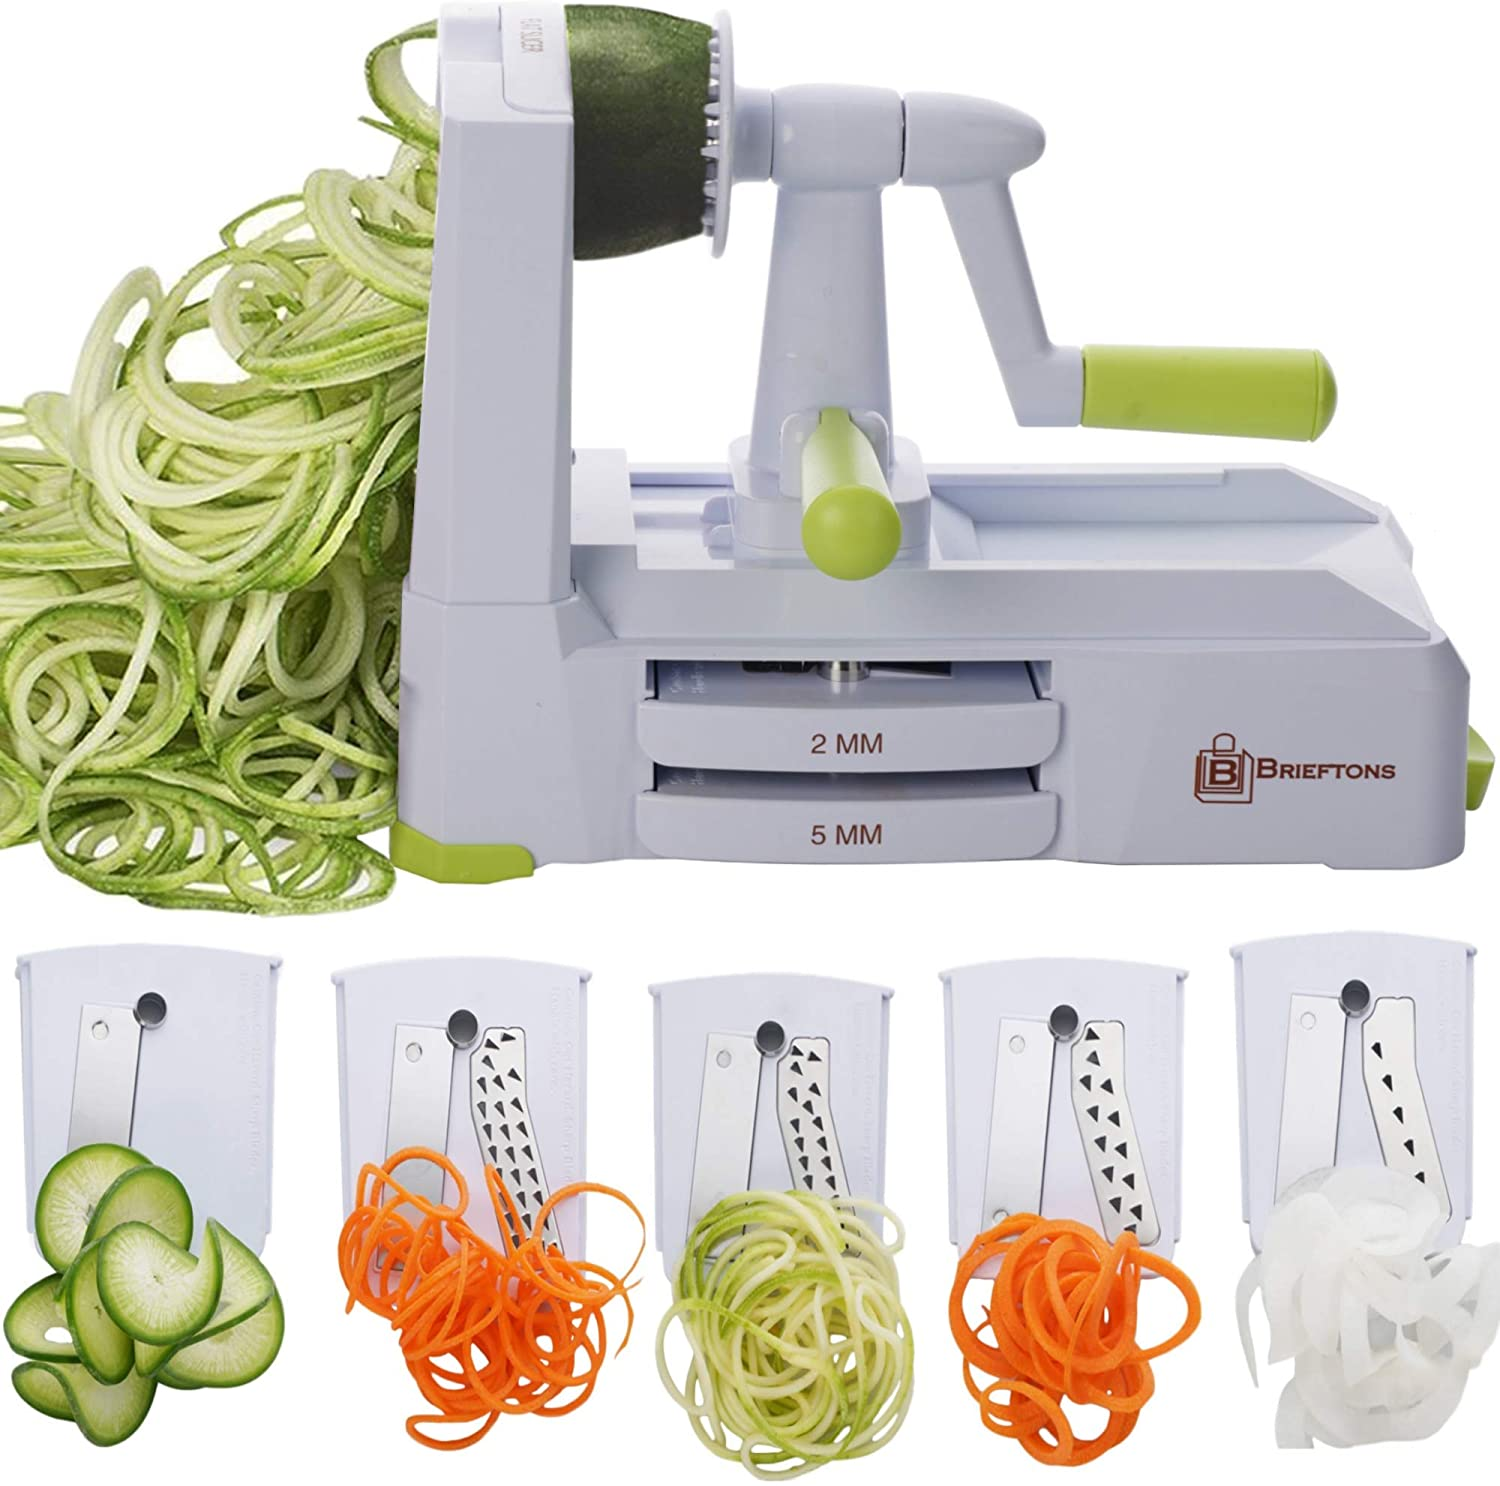 Vegetable spiralizer with its 5 different blade settings